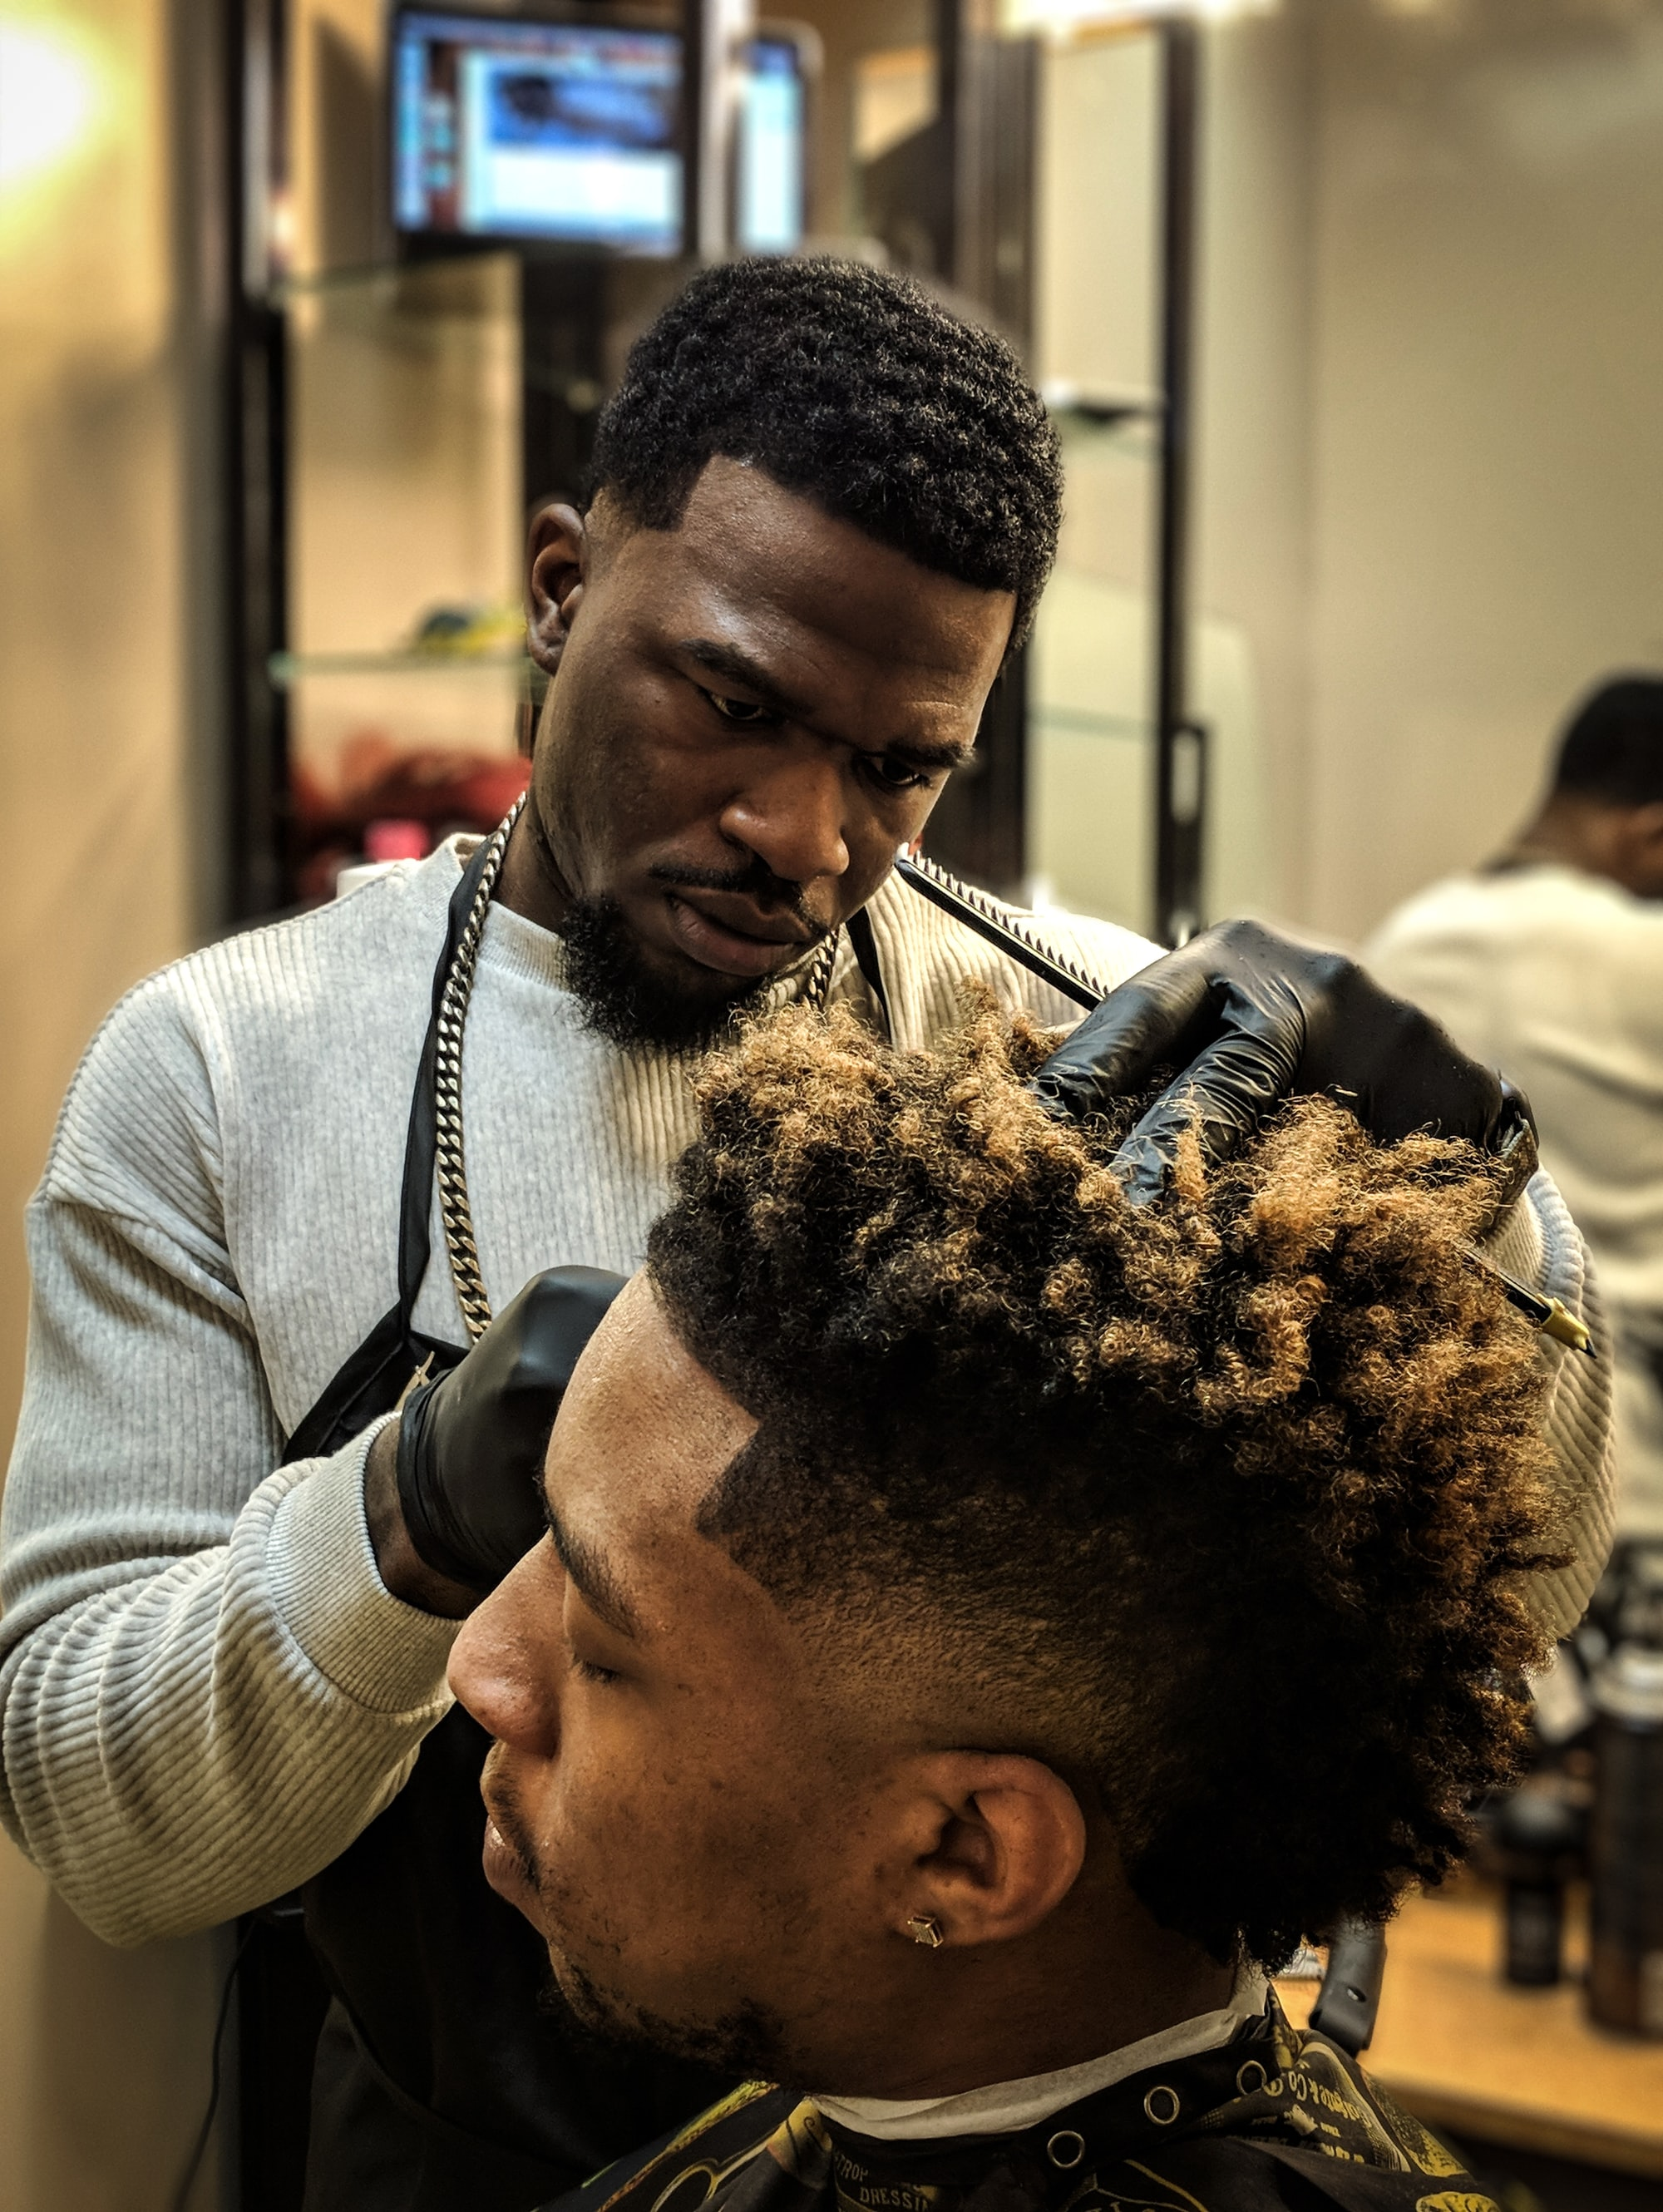 A barber working on his latest subject.